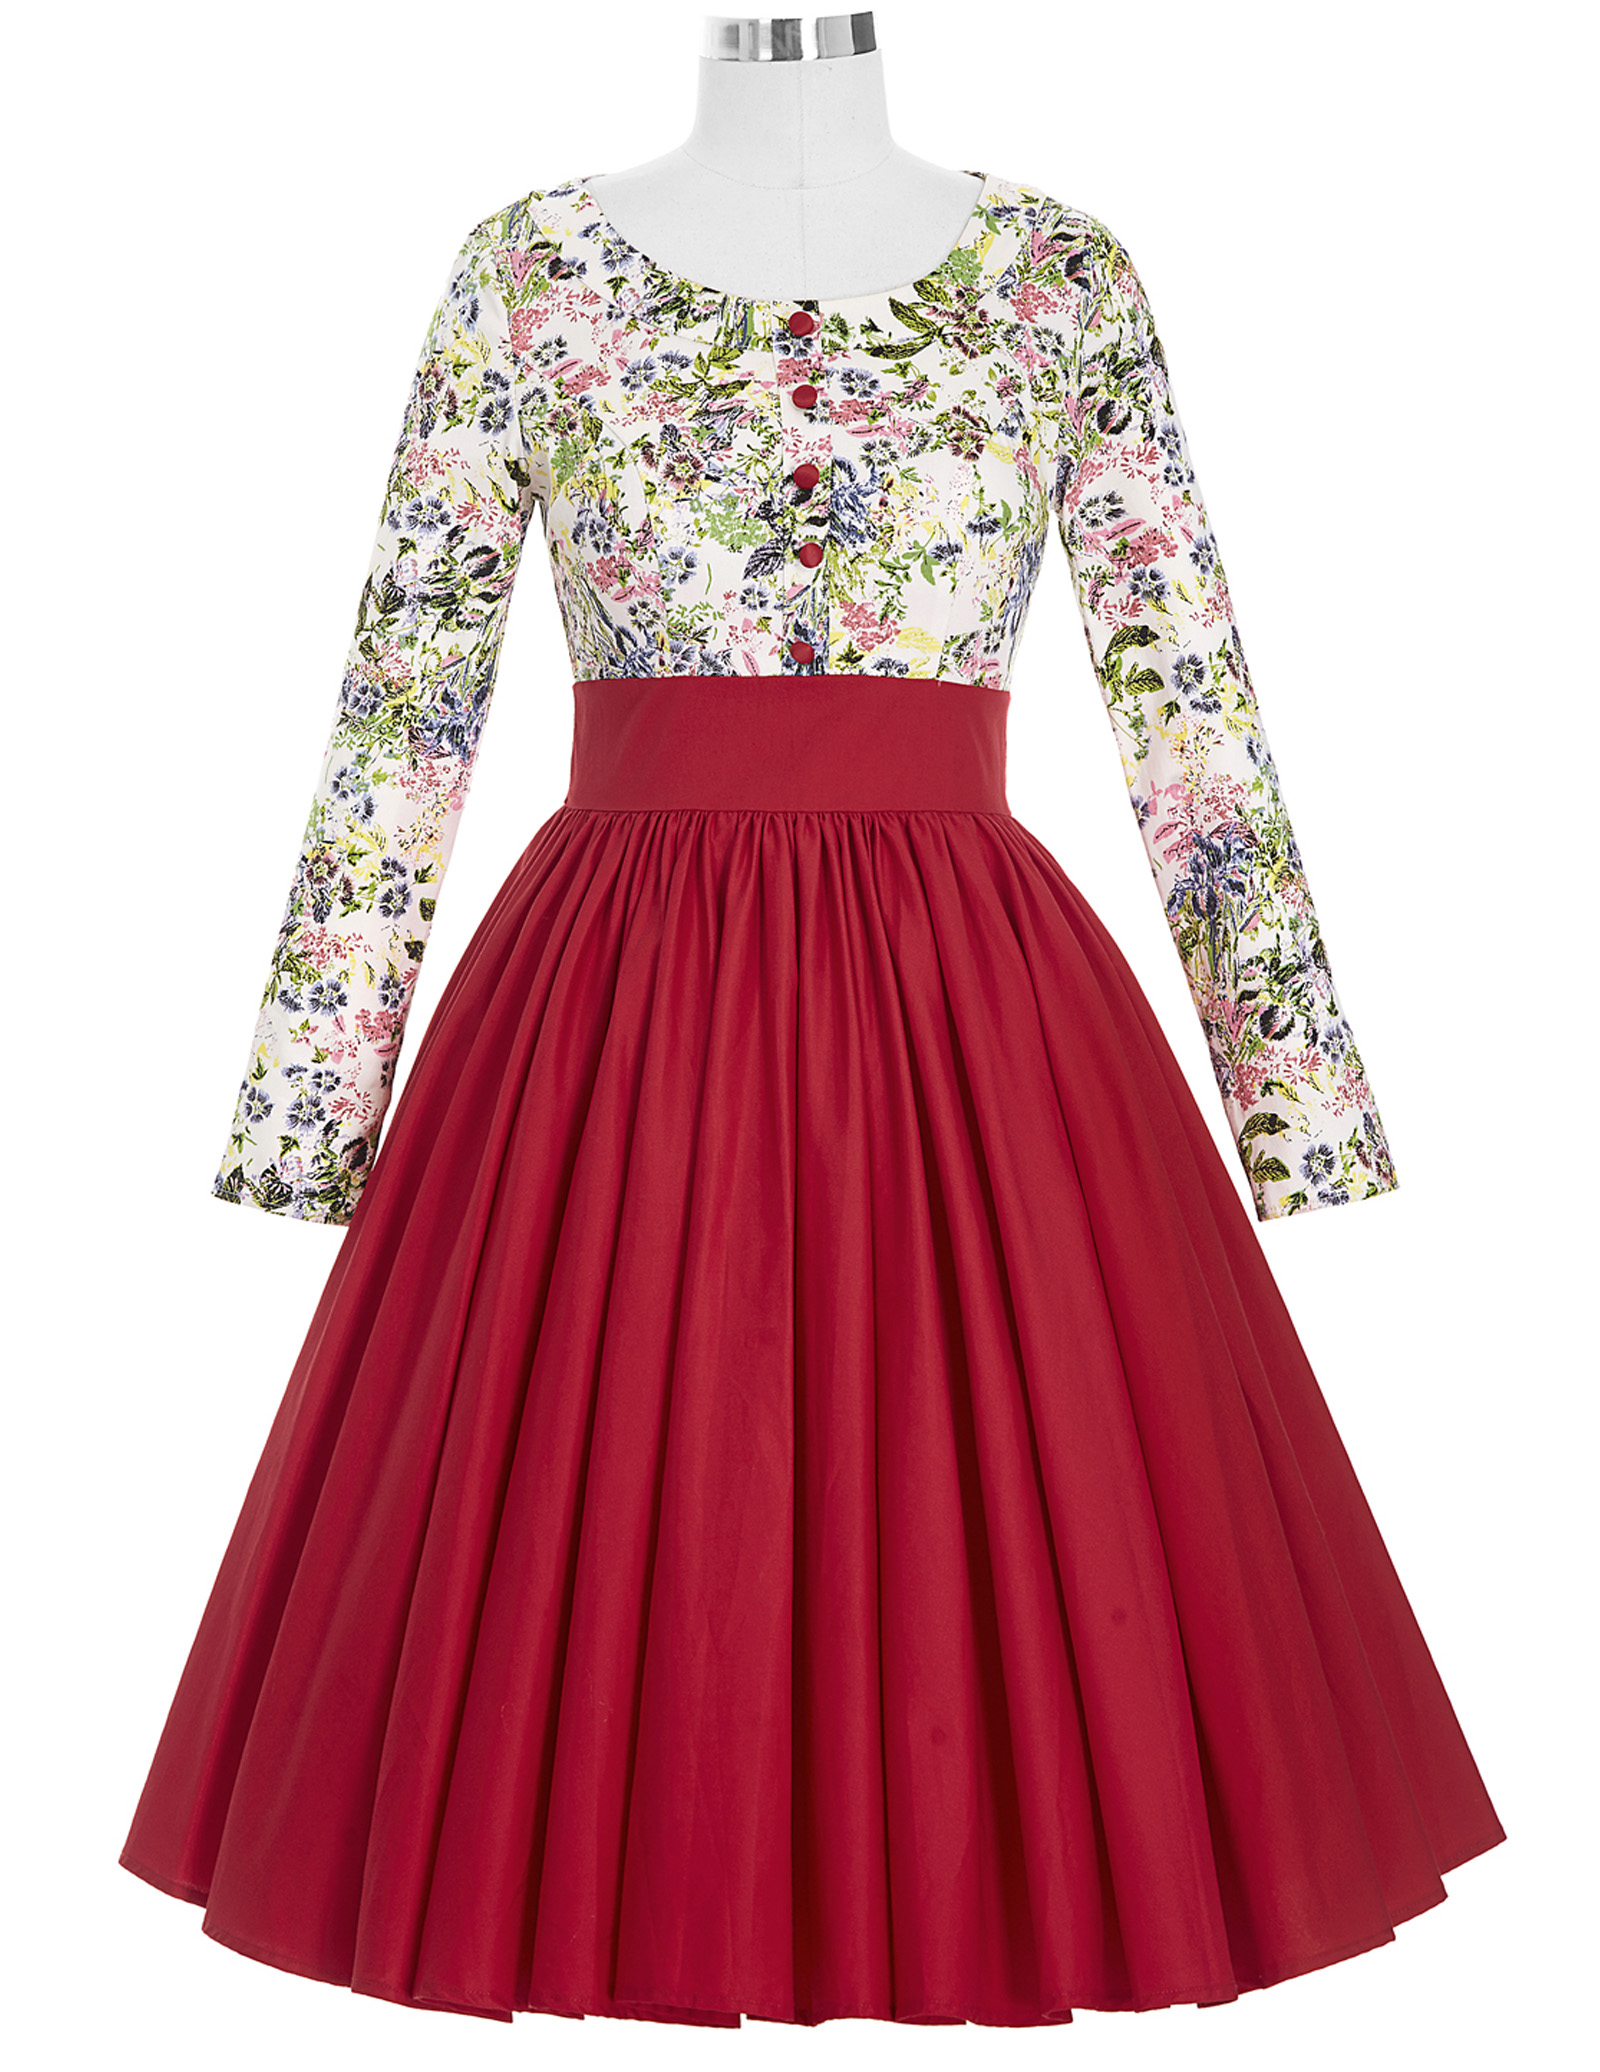 spring Summer Women Vintage floral patchwork Dress For Girl 50s 60s Rockabilly Robe Retro Big Swing A-Line Party Daily Dresses